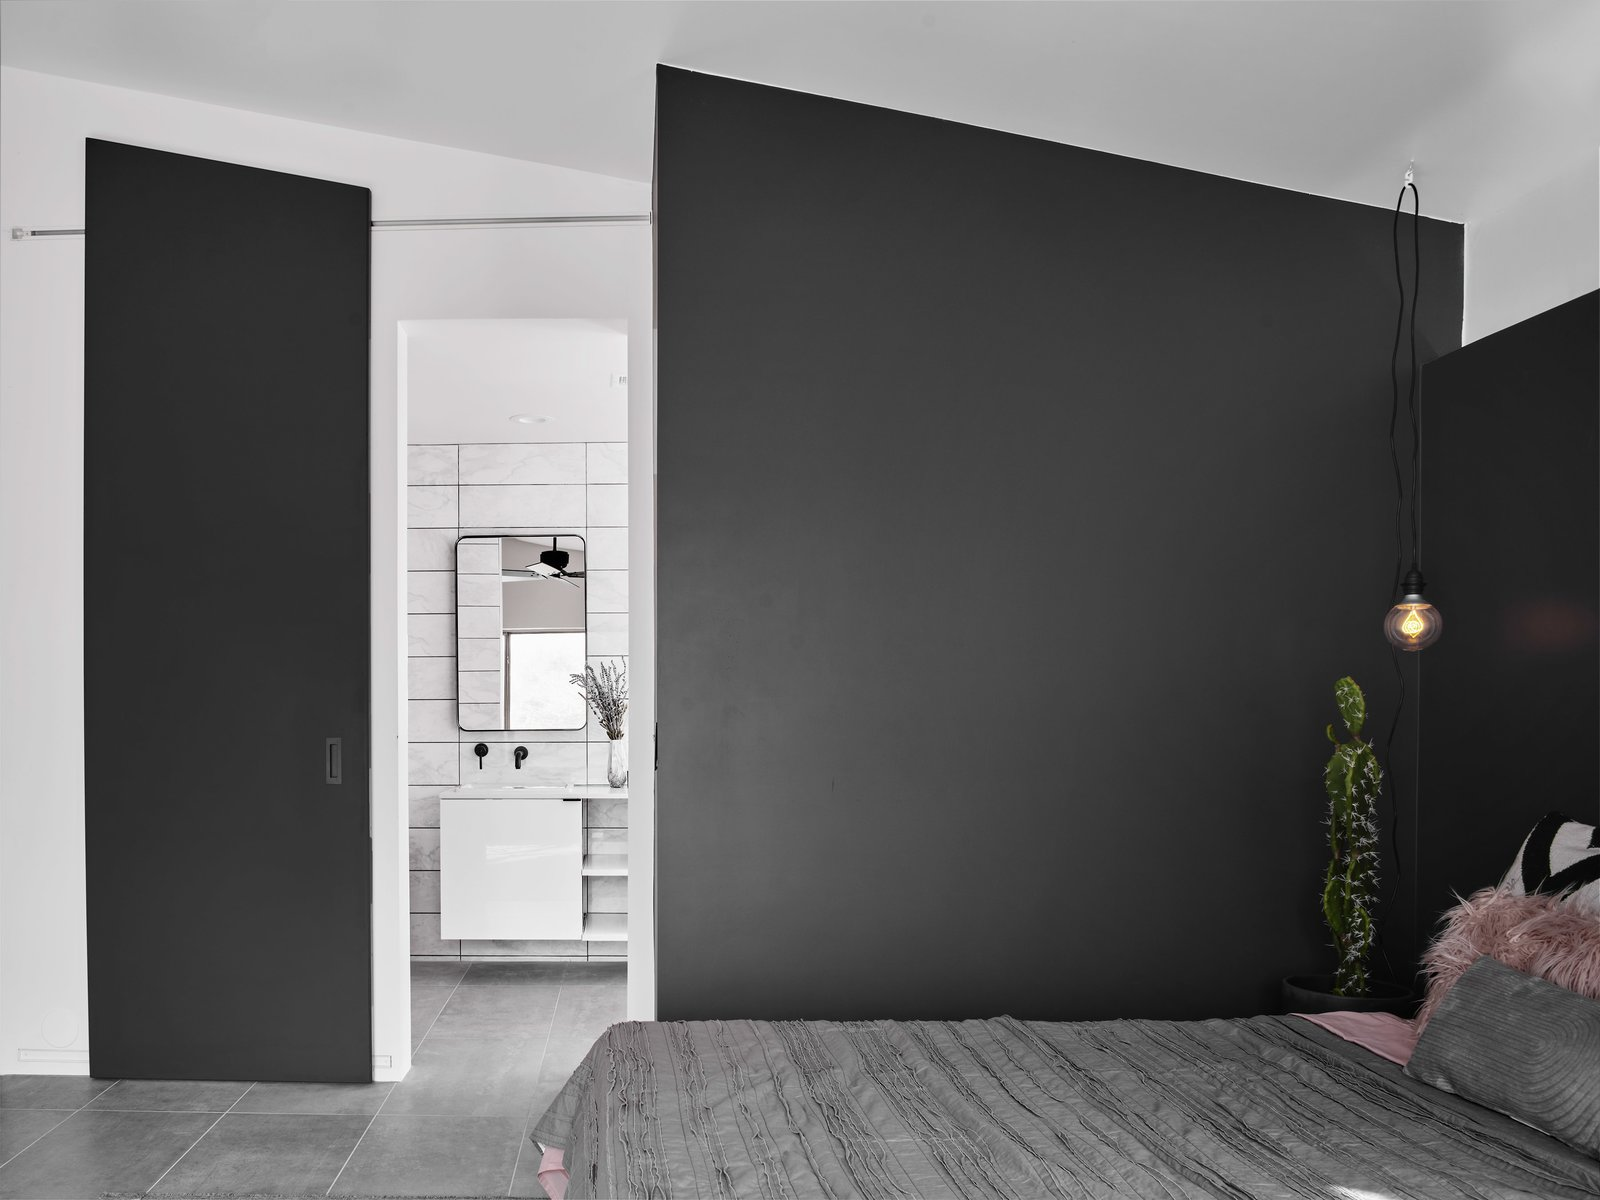 Doors, Sliding Door Type, Wood, and Interior The custom sliding bathroom door by Dotzler Design was made to disappear into the black wrap-around headboard of the bed.  Details